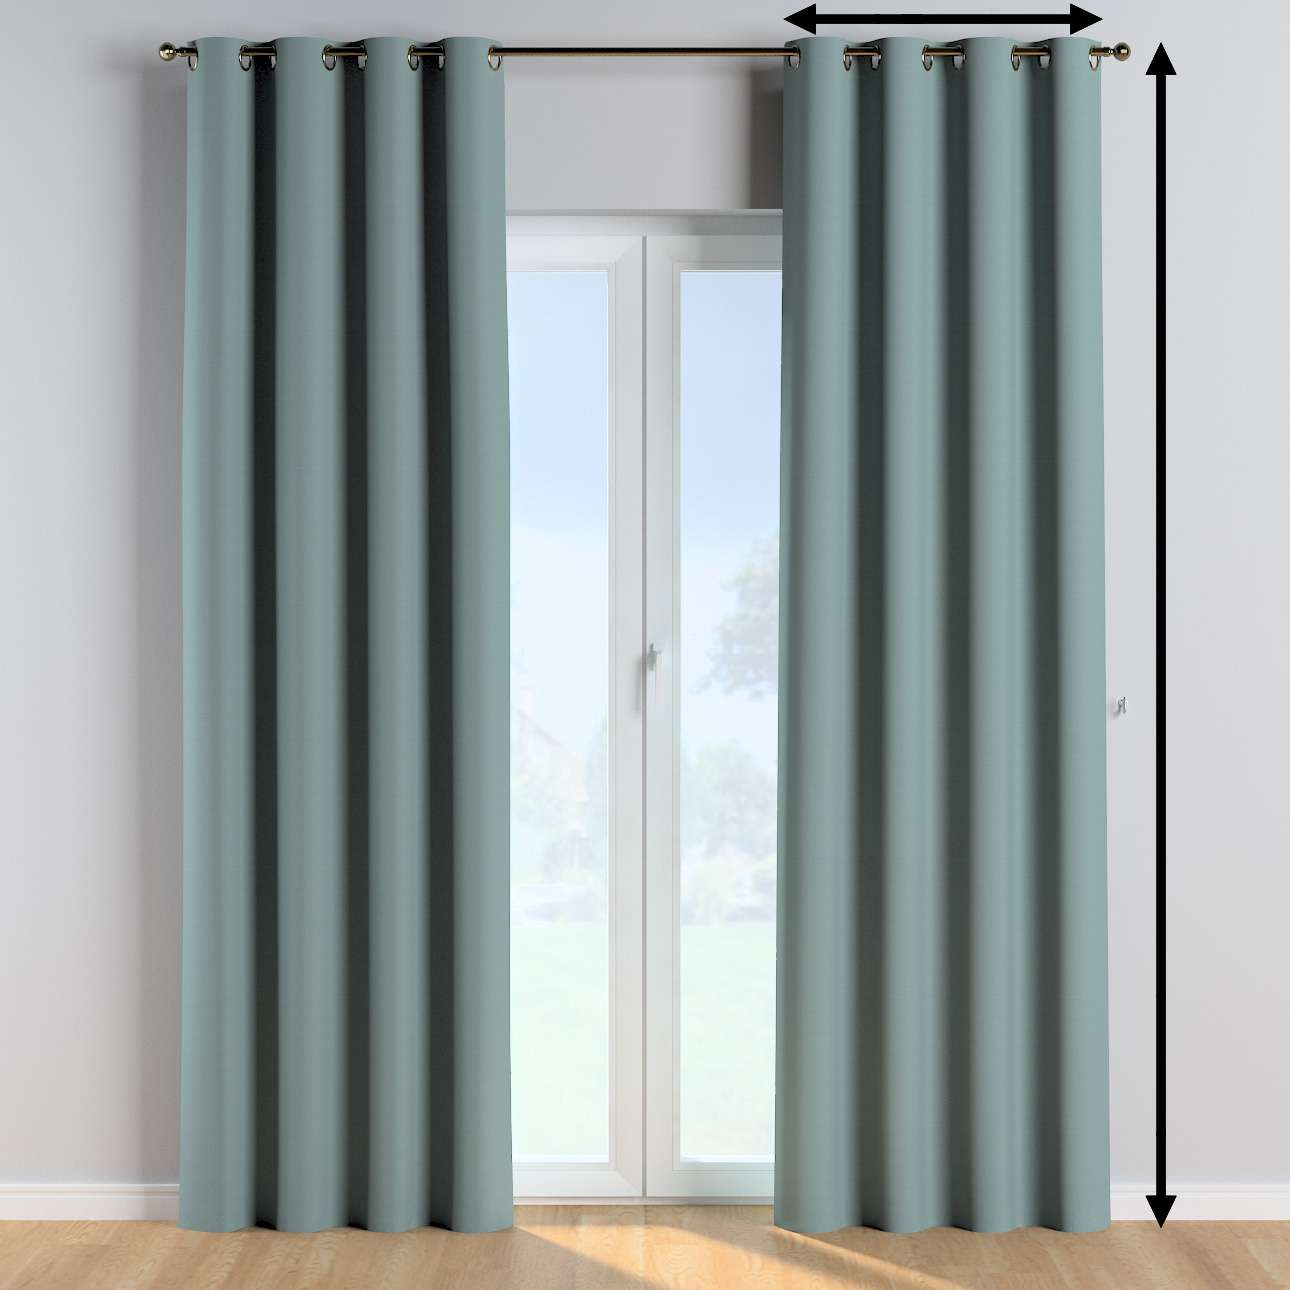 Eyelet curtains in collection Cotton Story, fabric: 702-40